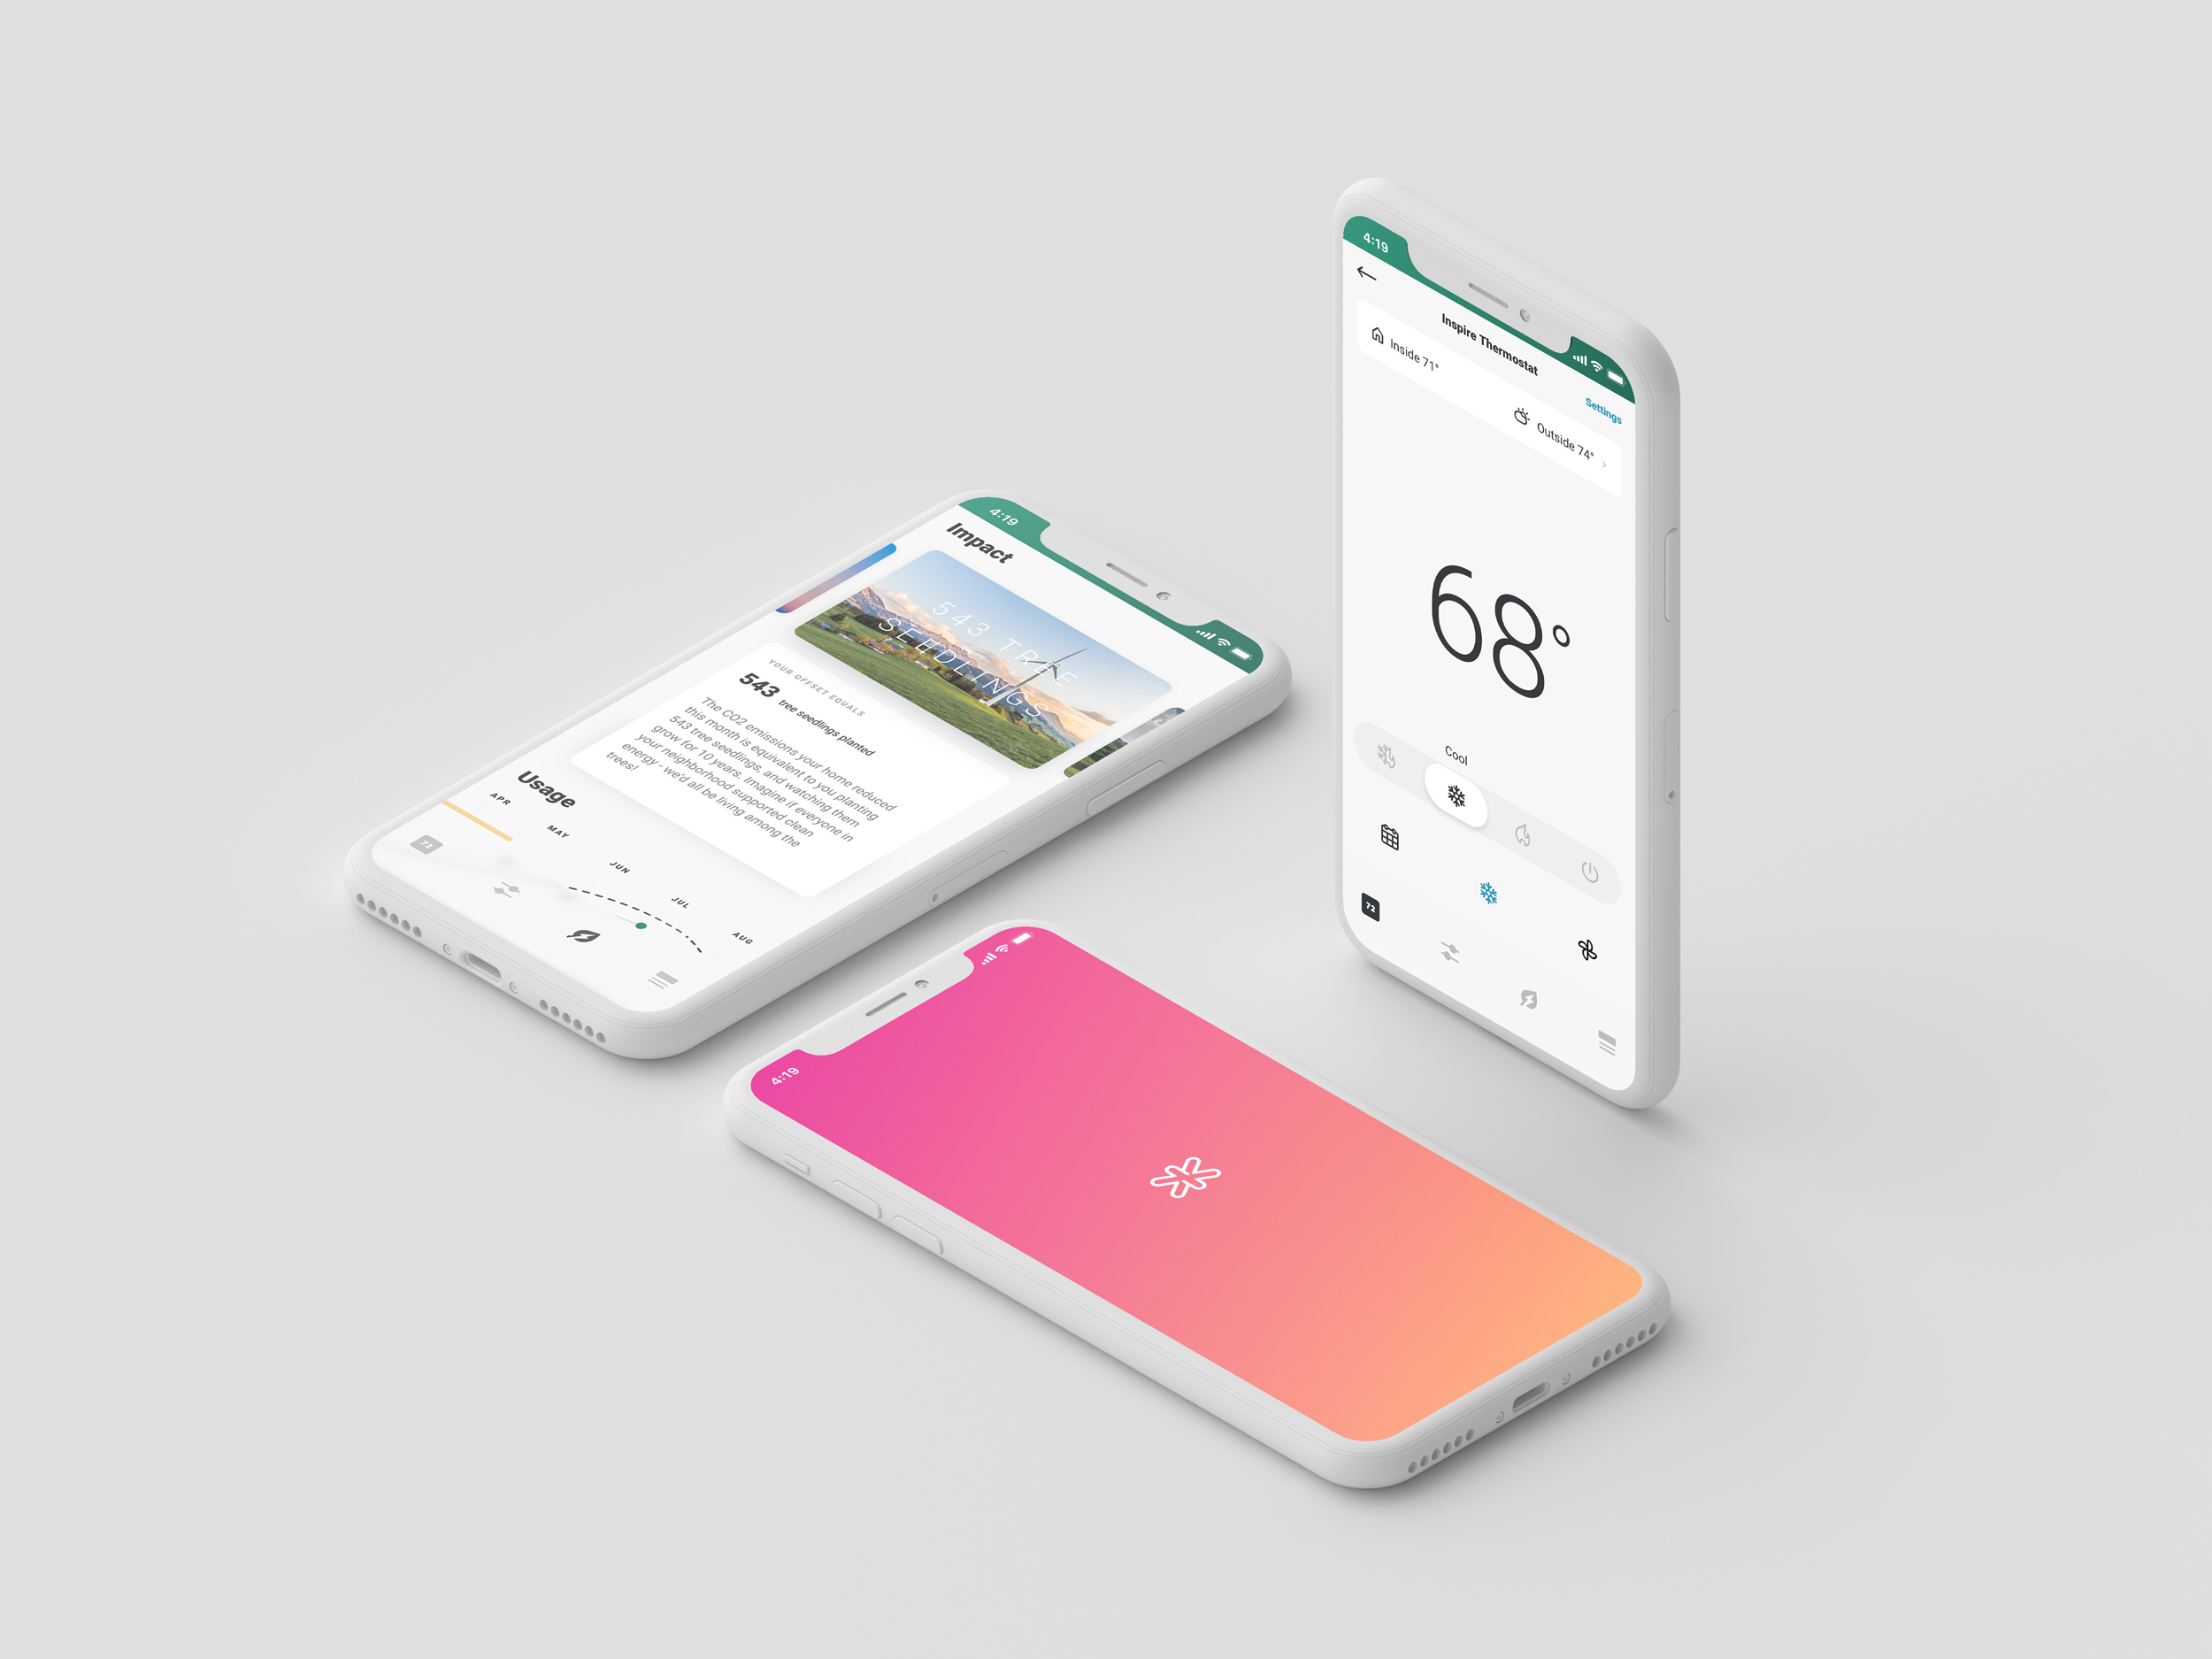 Product inspireapp highlight